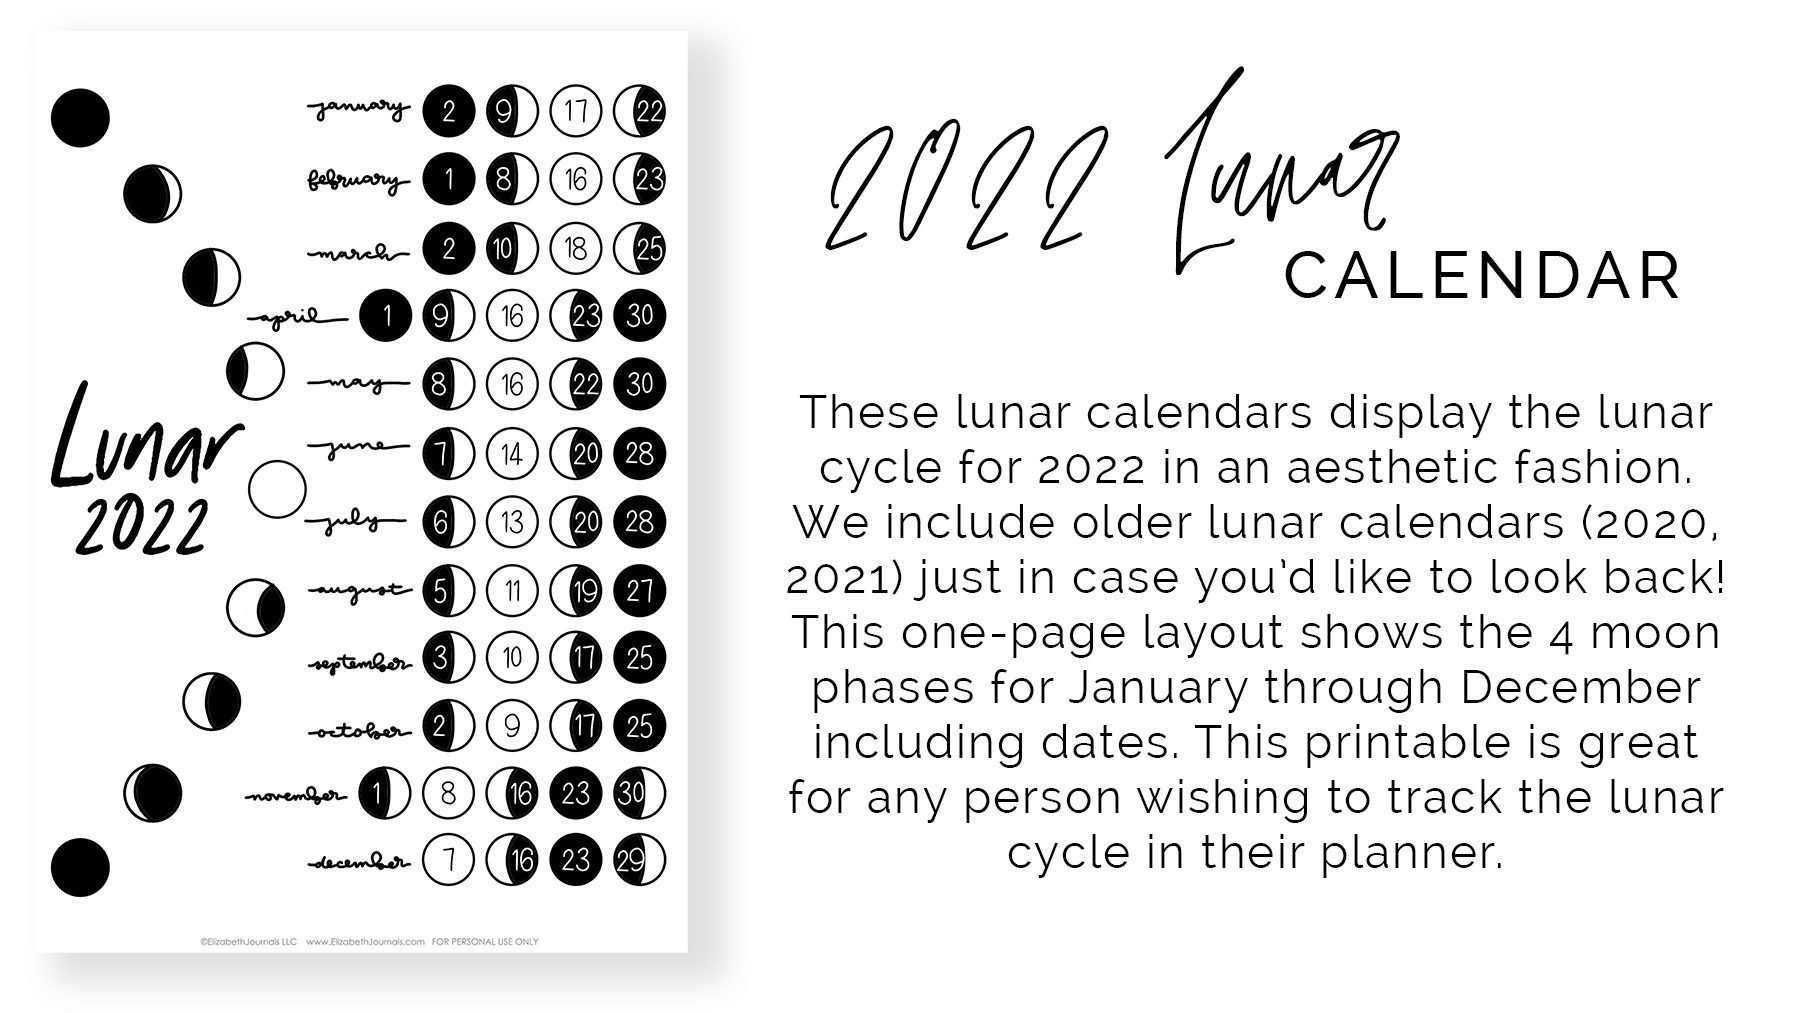 Product-Banner-2022 lunar calendar with image and descripton